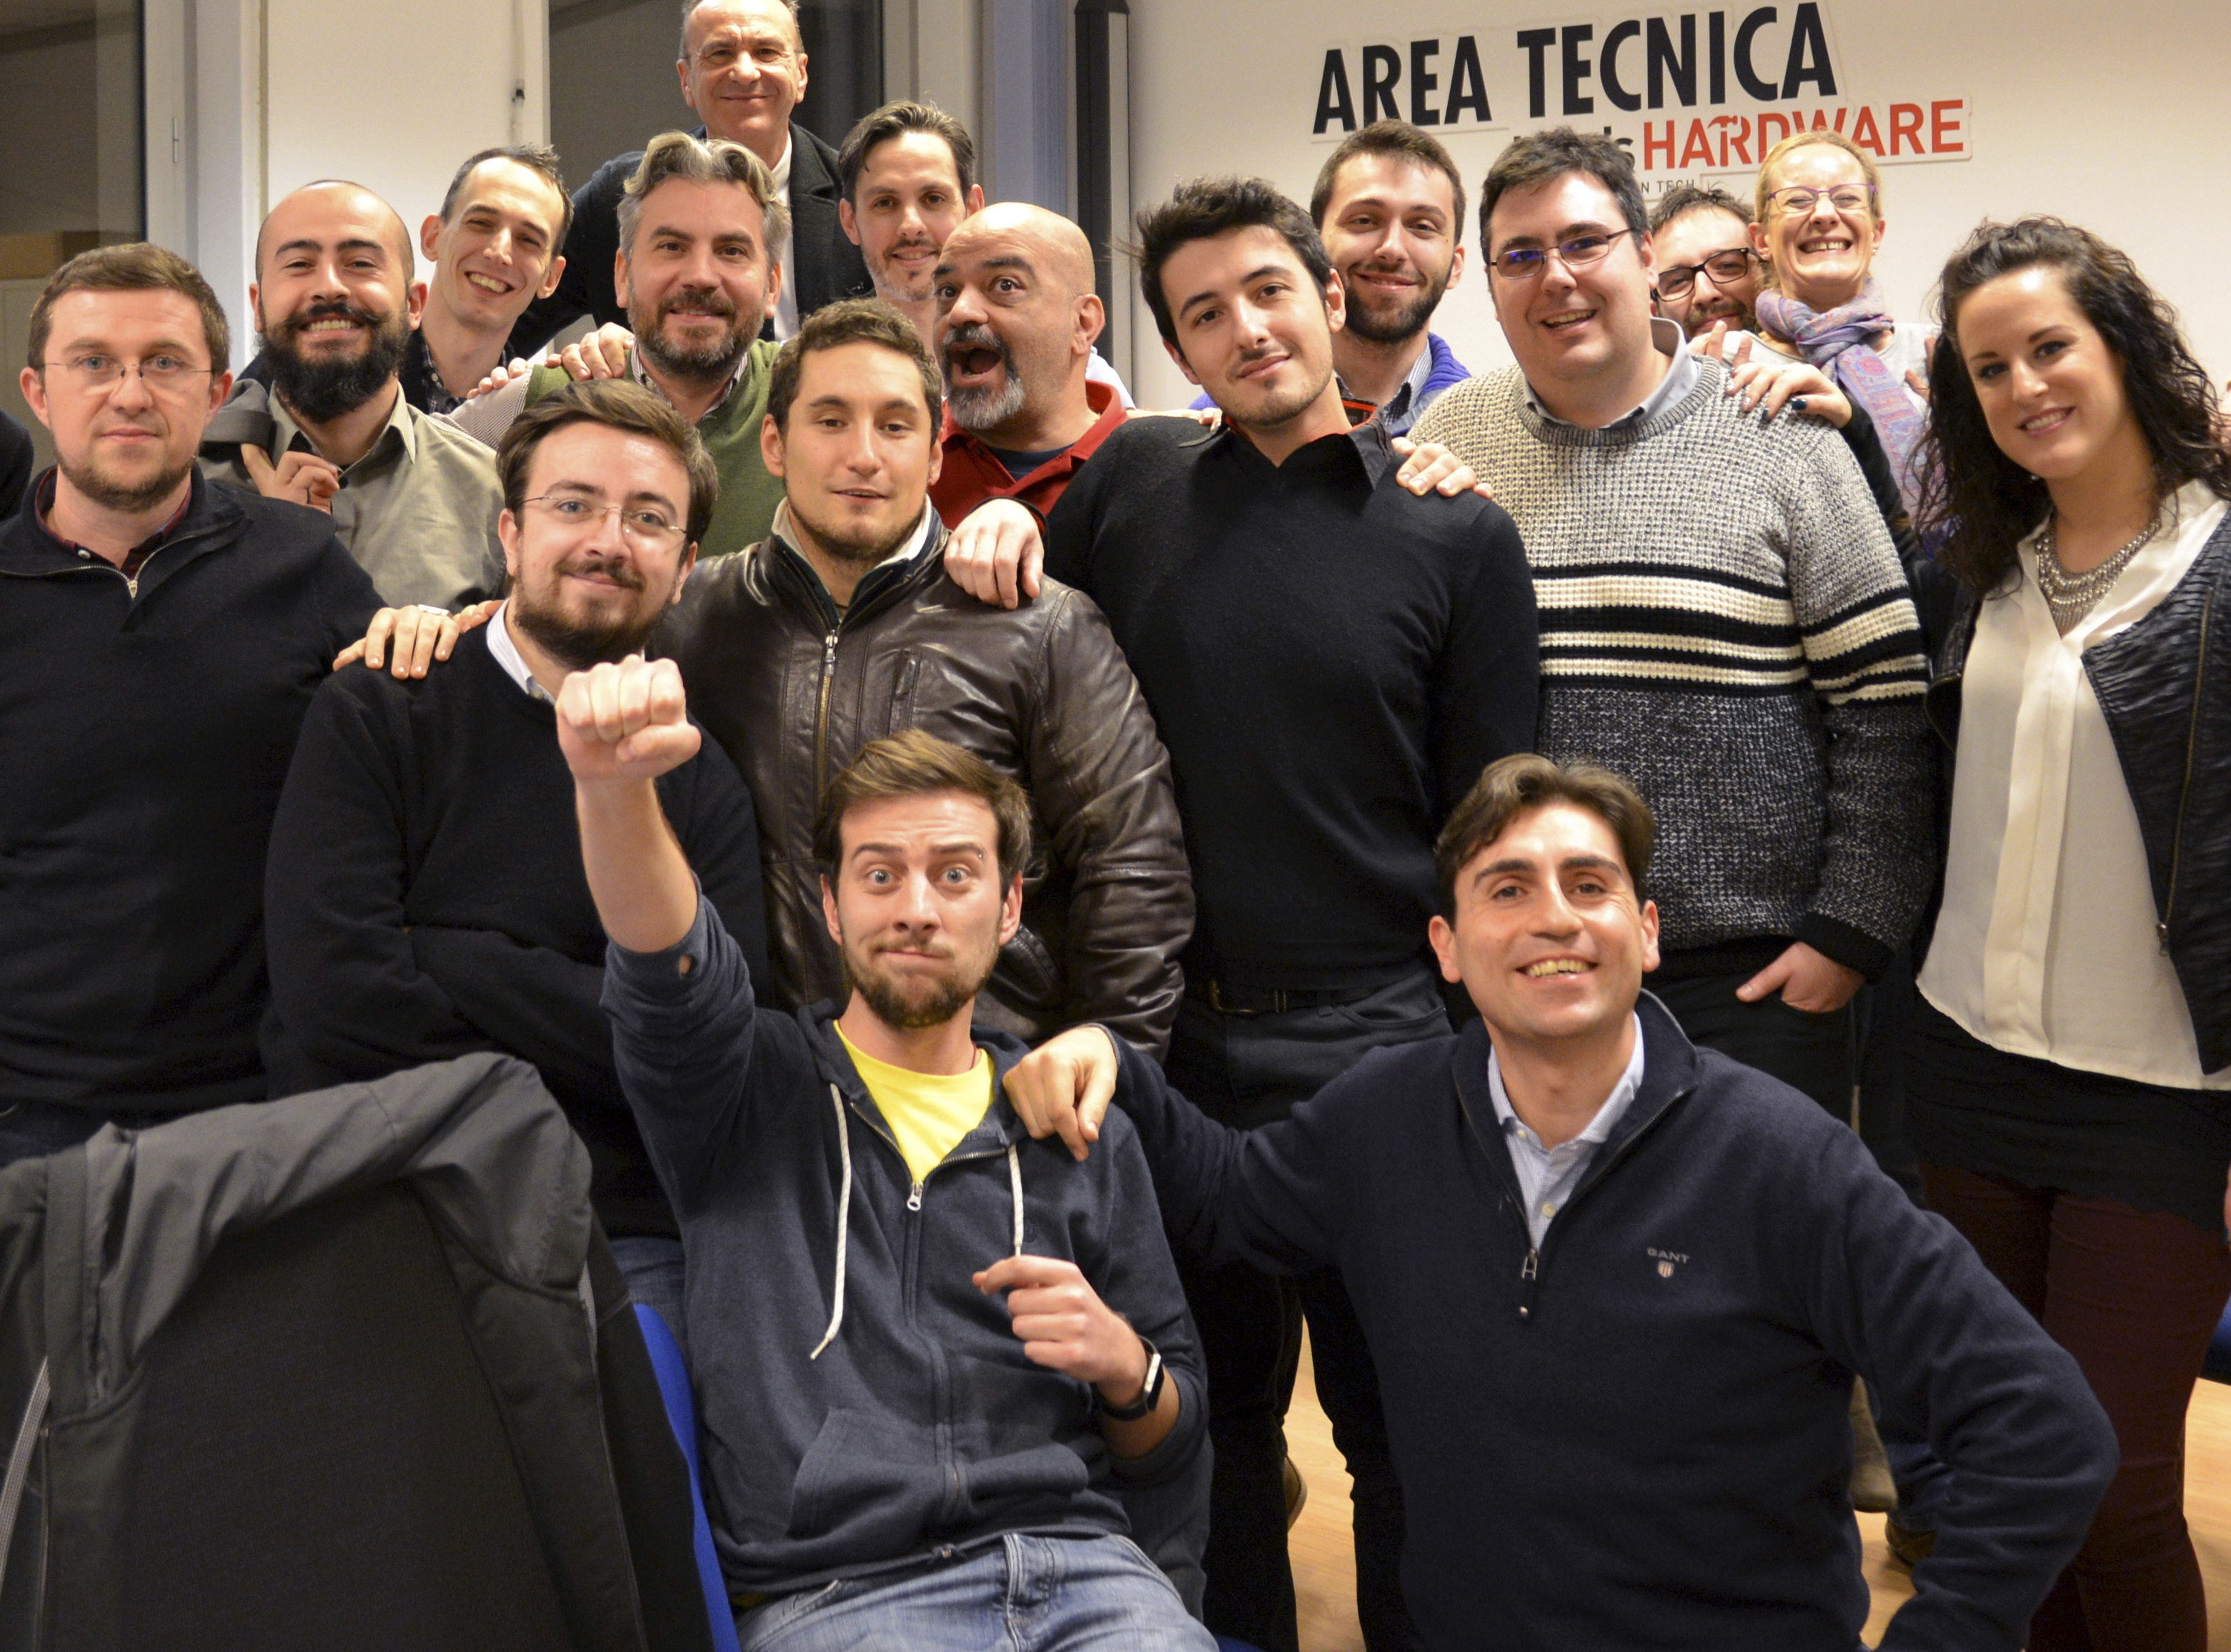 This December 2016 photo provided Aug. 18, 2017 shows Bruno Gulotta, at center wearing a black shirt, with his colleagues at their office in Legnano, near Milan, Italy.